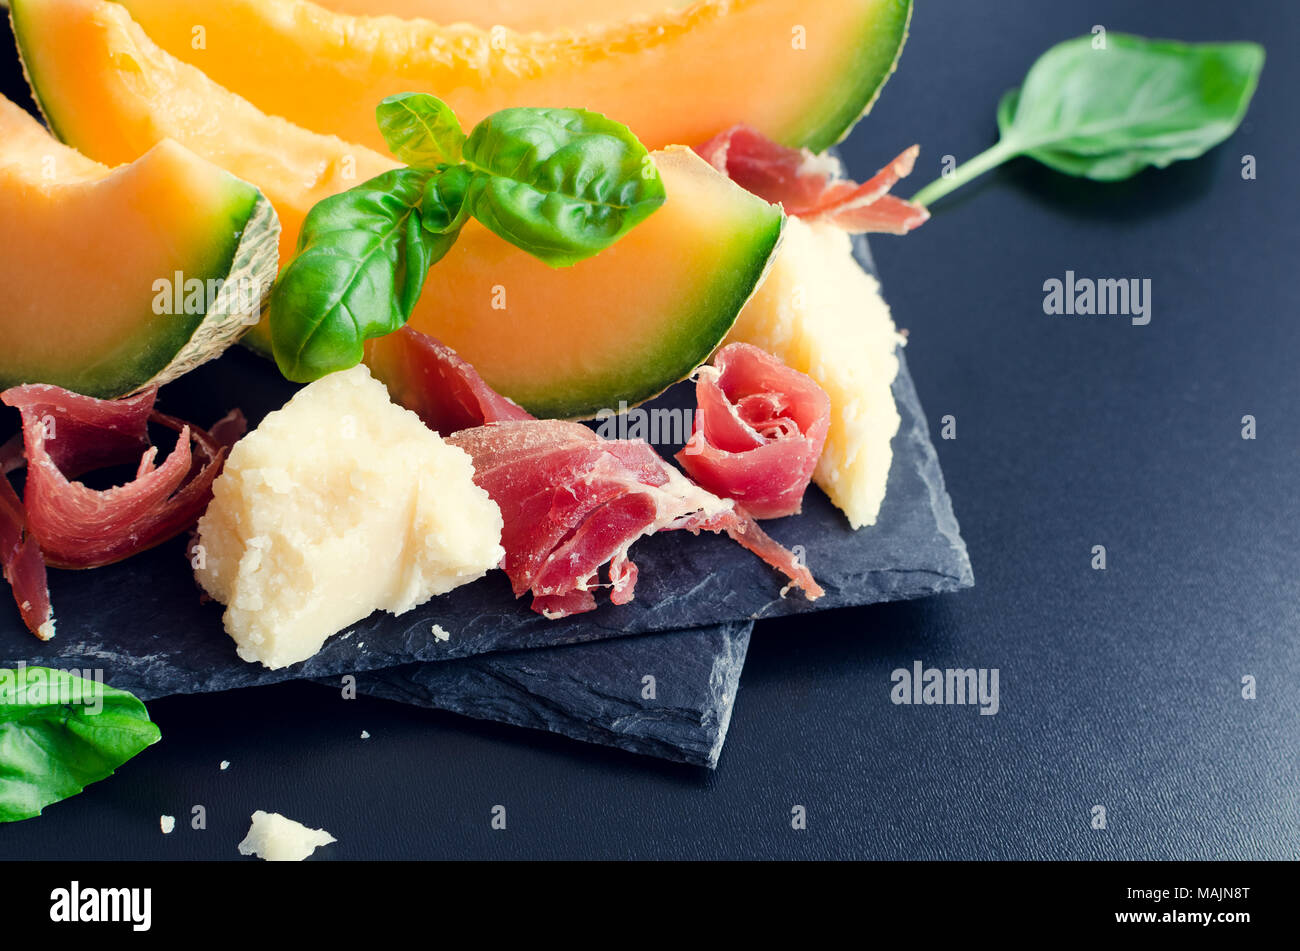 Concept of italian food with melon and prosciutto on dark background. Traditional appetizer antipasto. Selective focus. - Stock Image